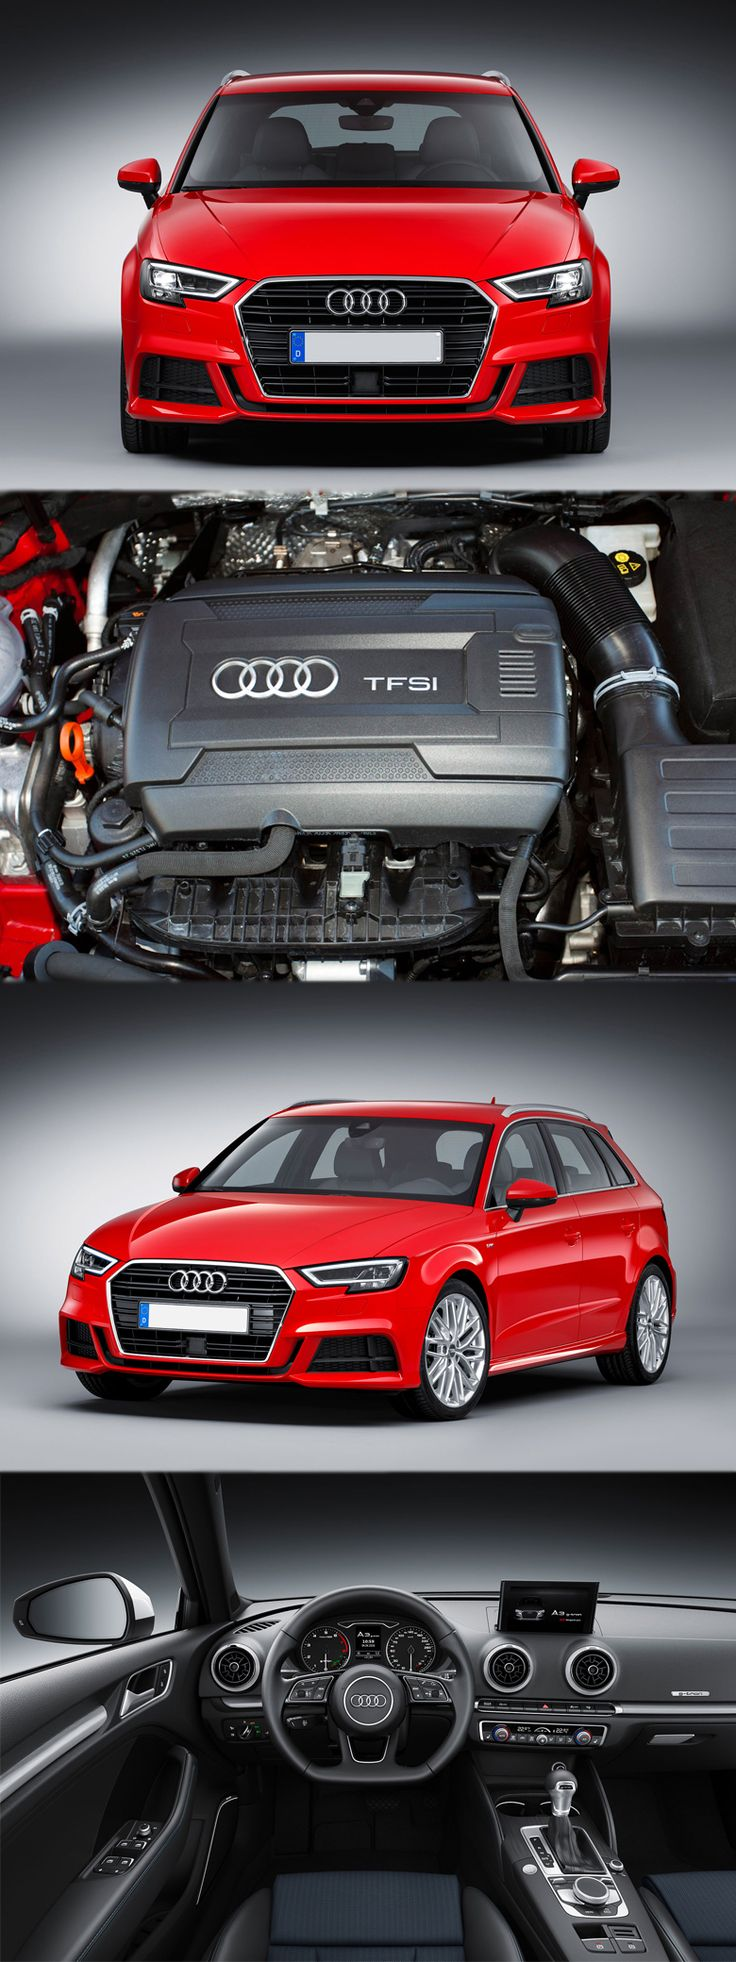 Sneak Peek-Audi A3 Revamped Look and Design Read more details at: https://www.enginefitters.co.uk/car/18082/audi-a3-sportback-hatchback/engines